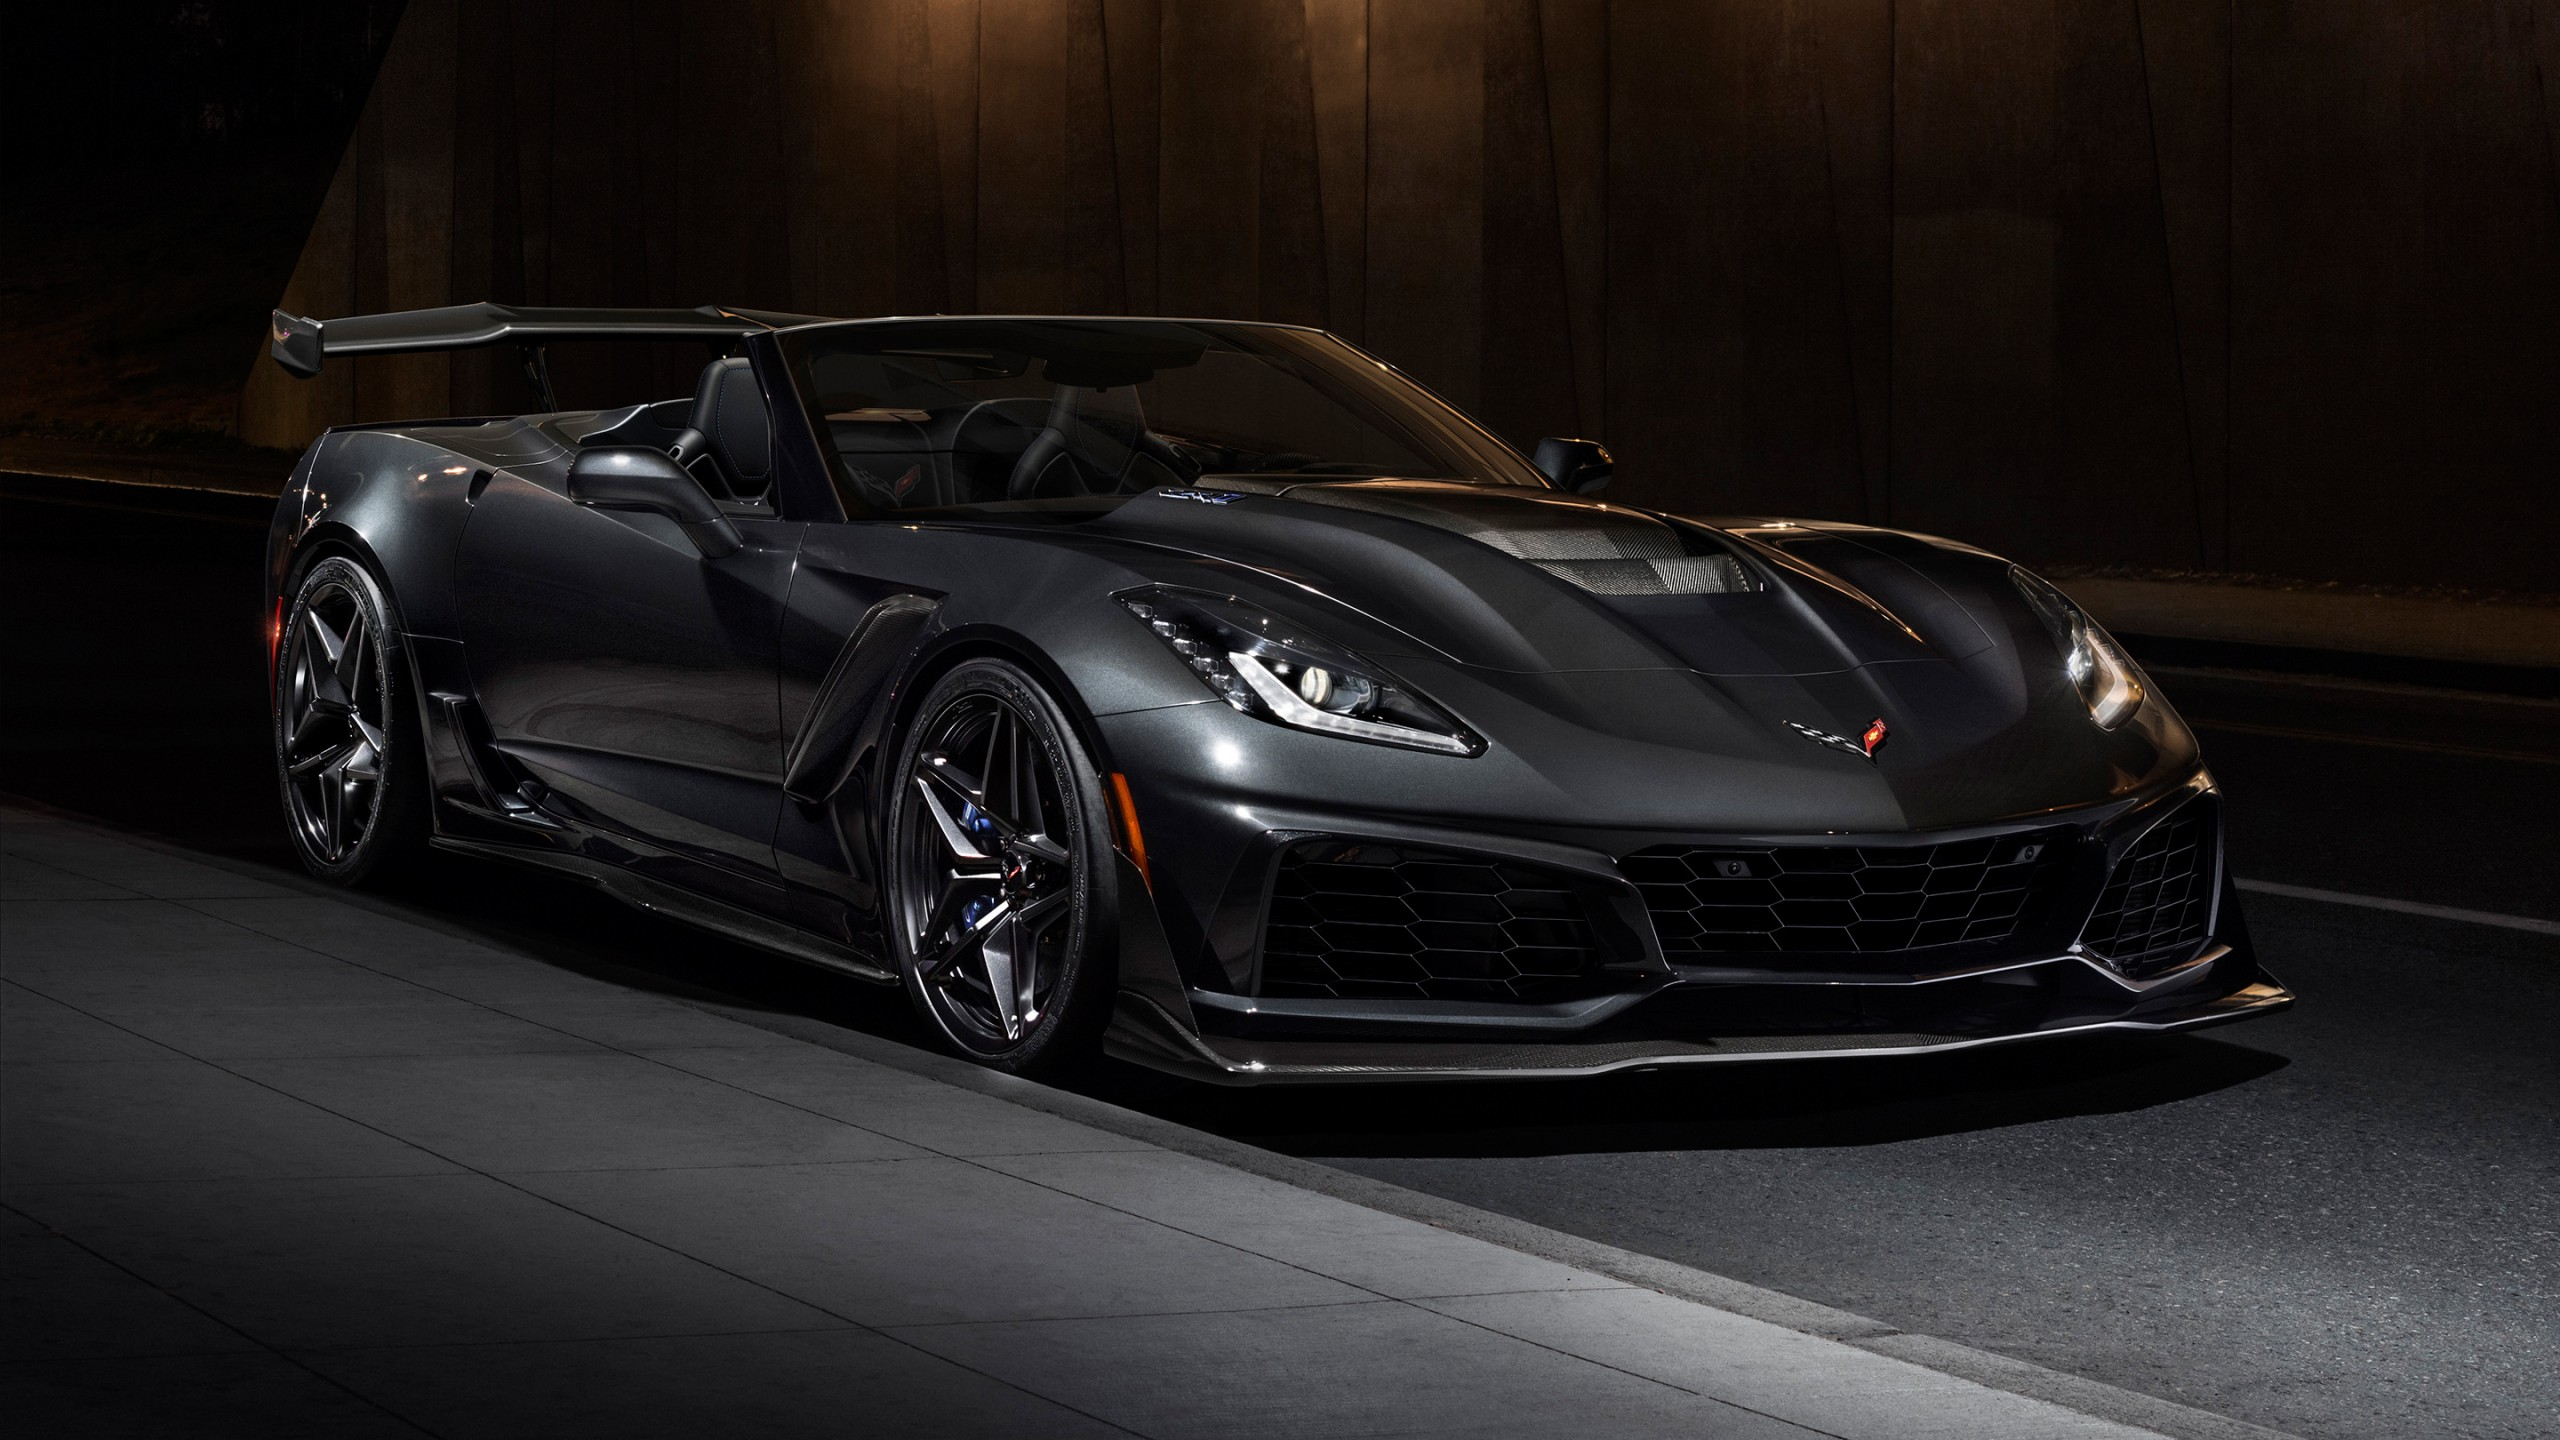 2019 Chevrolet Corvette ZR1 Convertible Wallpaper | HD Car Wallpapers | ID #9180